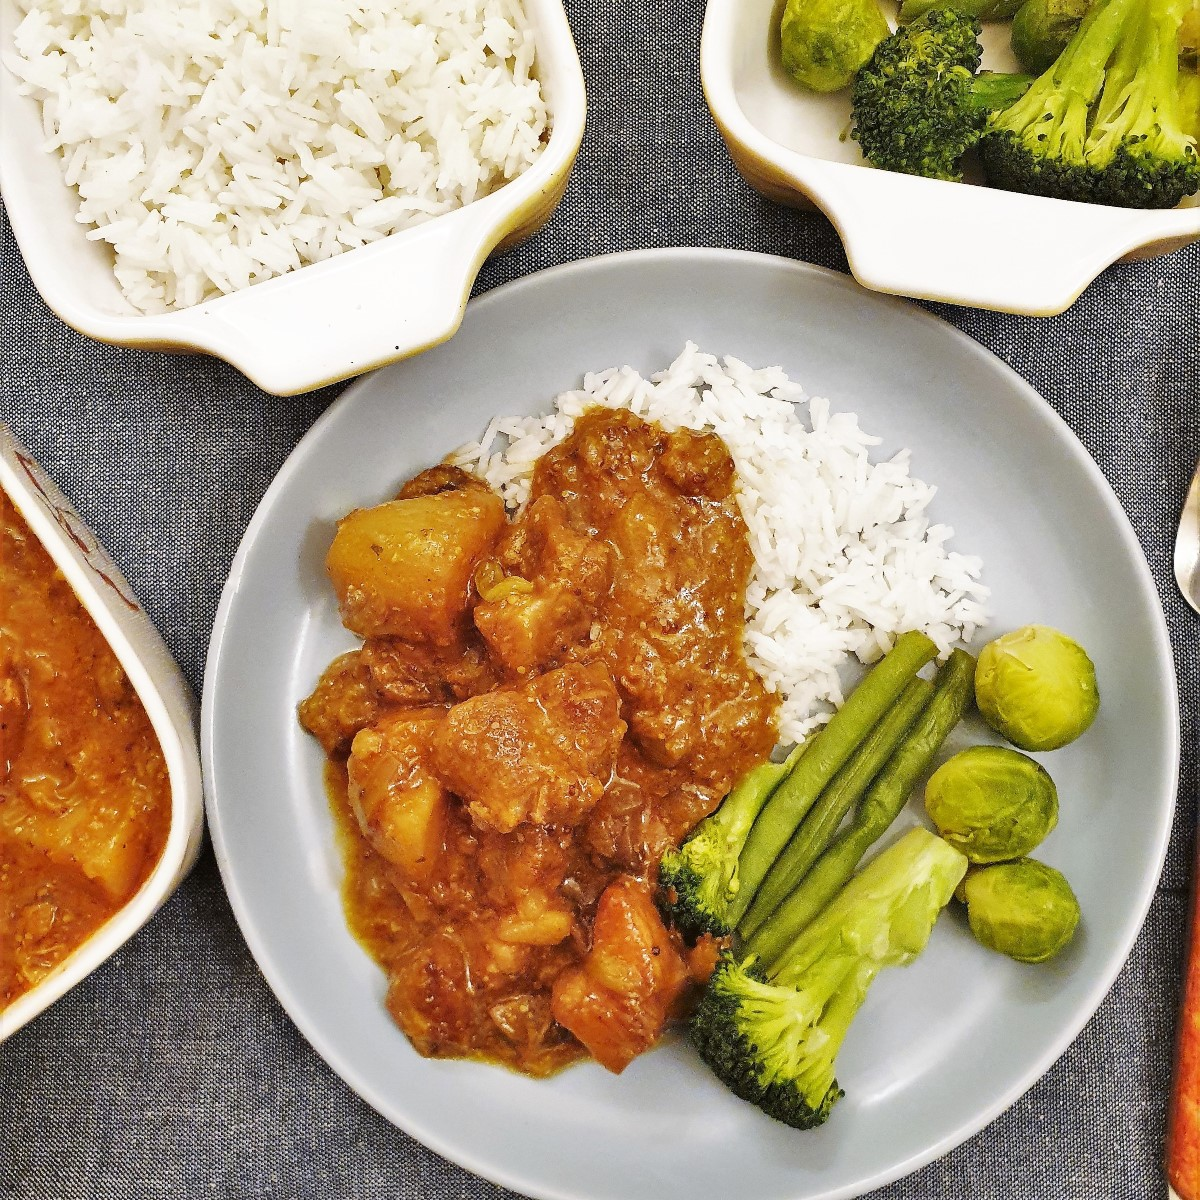 Honey mustard pork casserole on a blue plate with rice and vegetables.